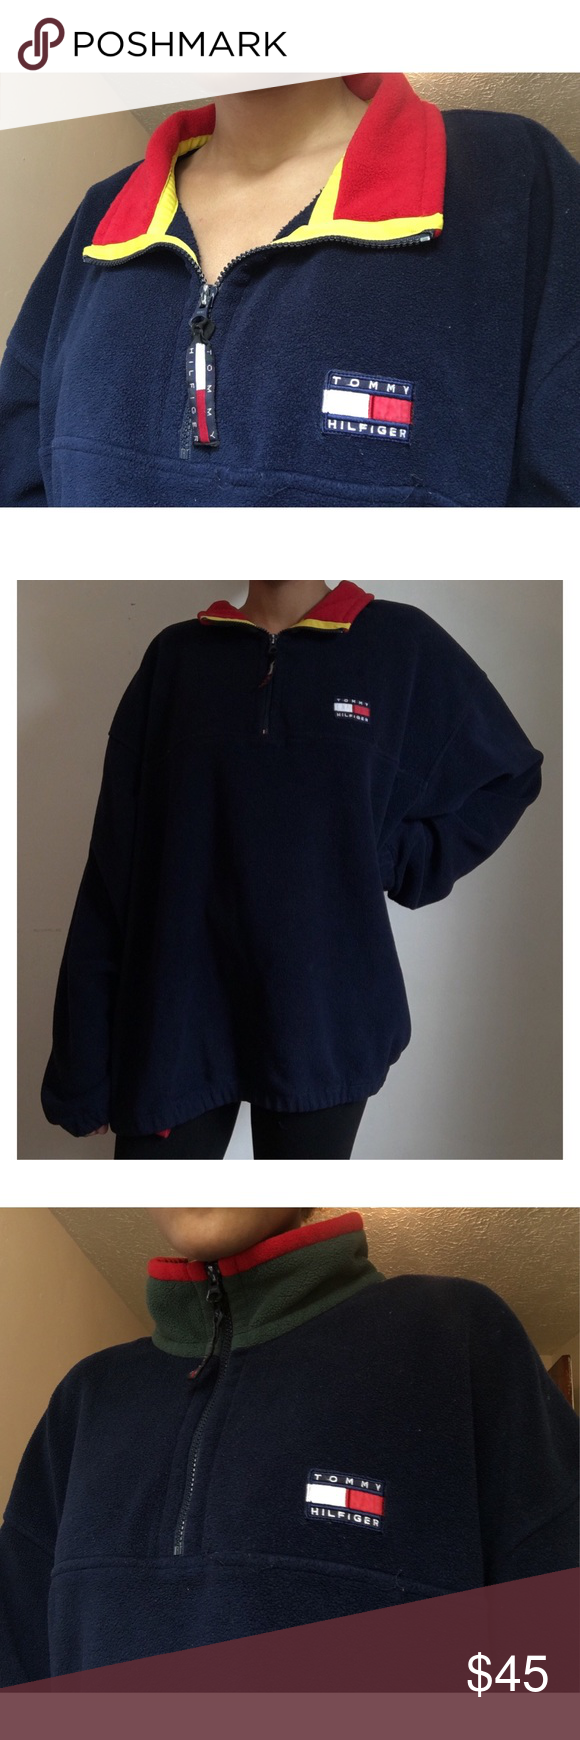 5cbd01bb6 Vintage Tommy Hilfiger Jacket/Sweater Very comfy, unnoticeable hold on from  line Tommy Hilfiger Jackets & Coats